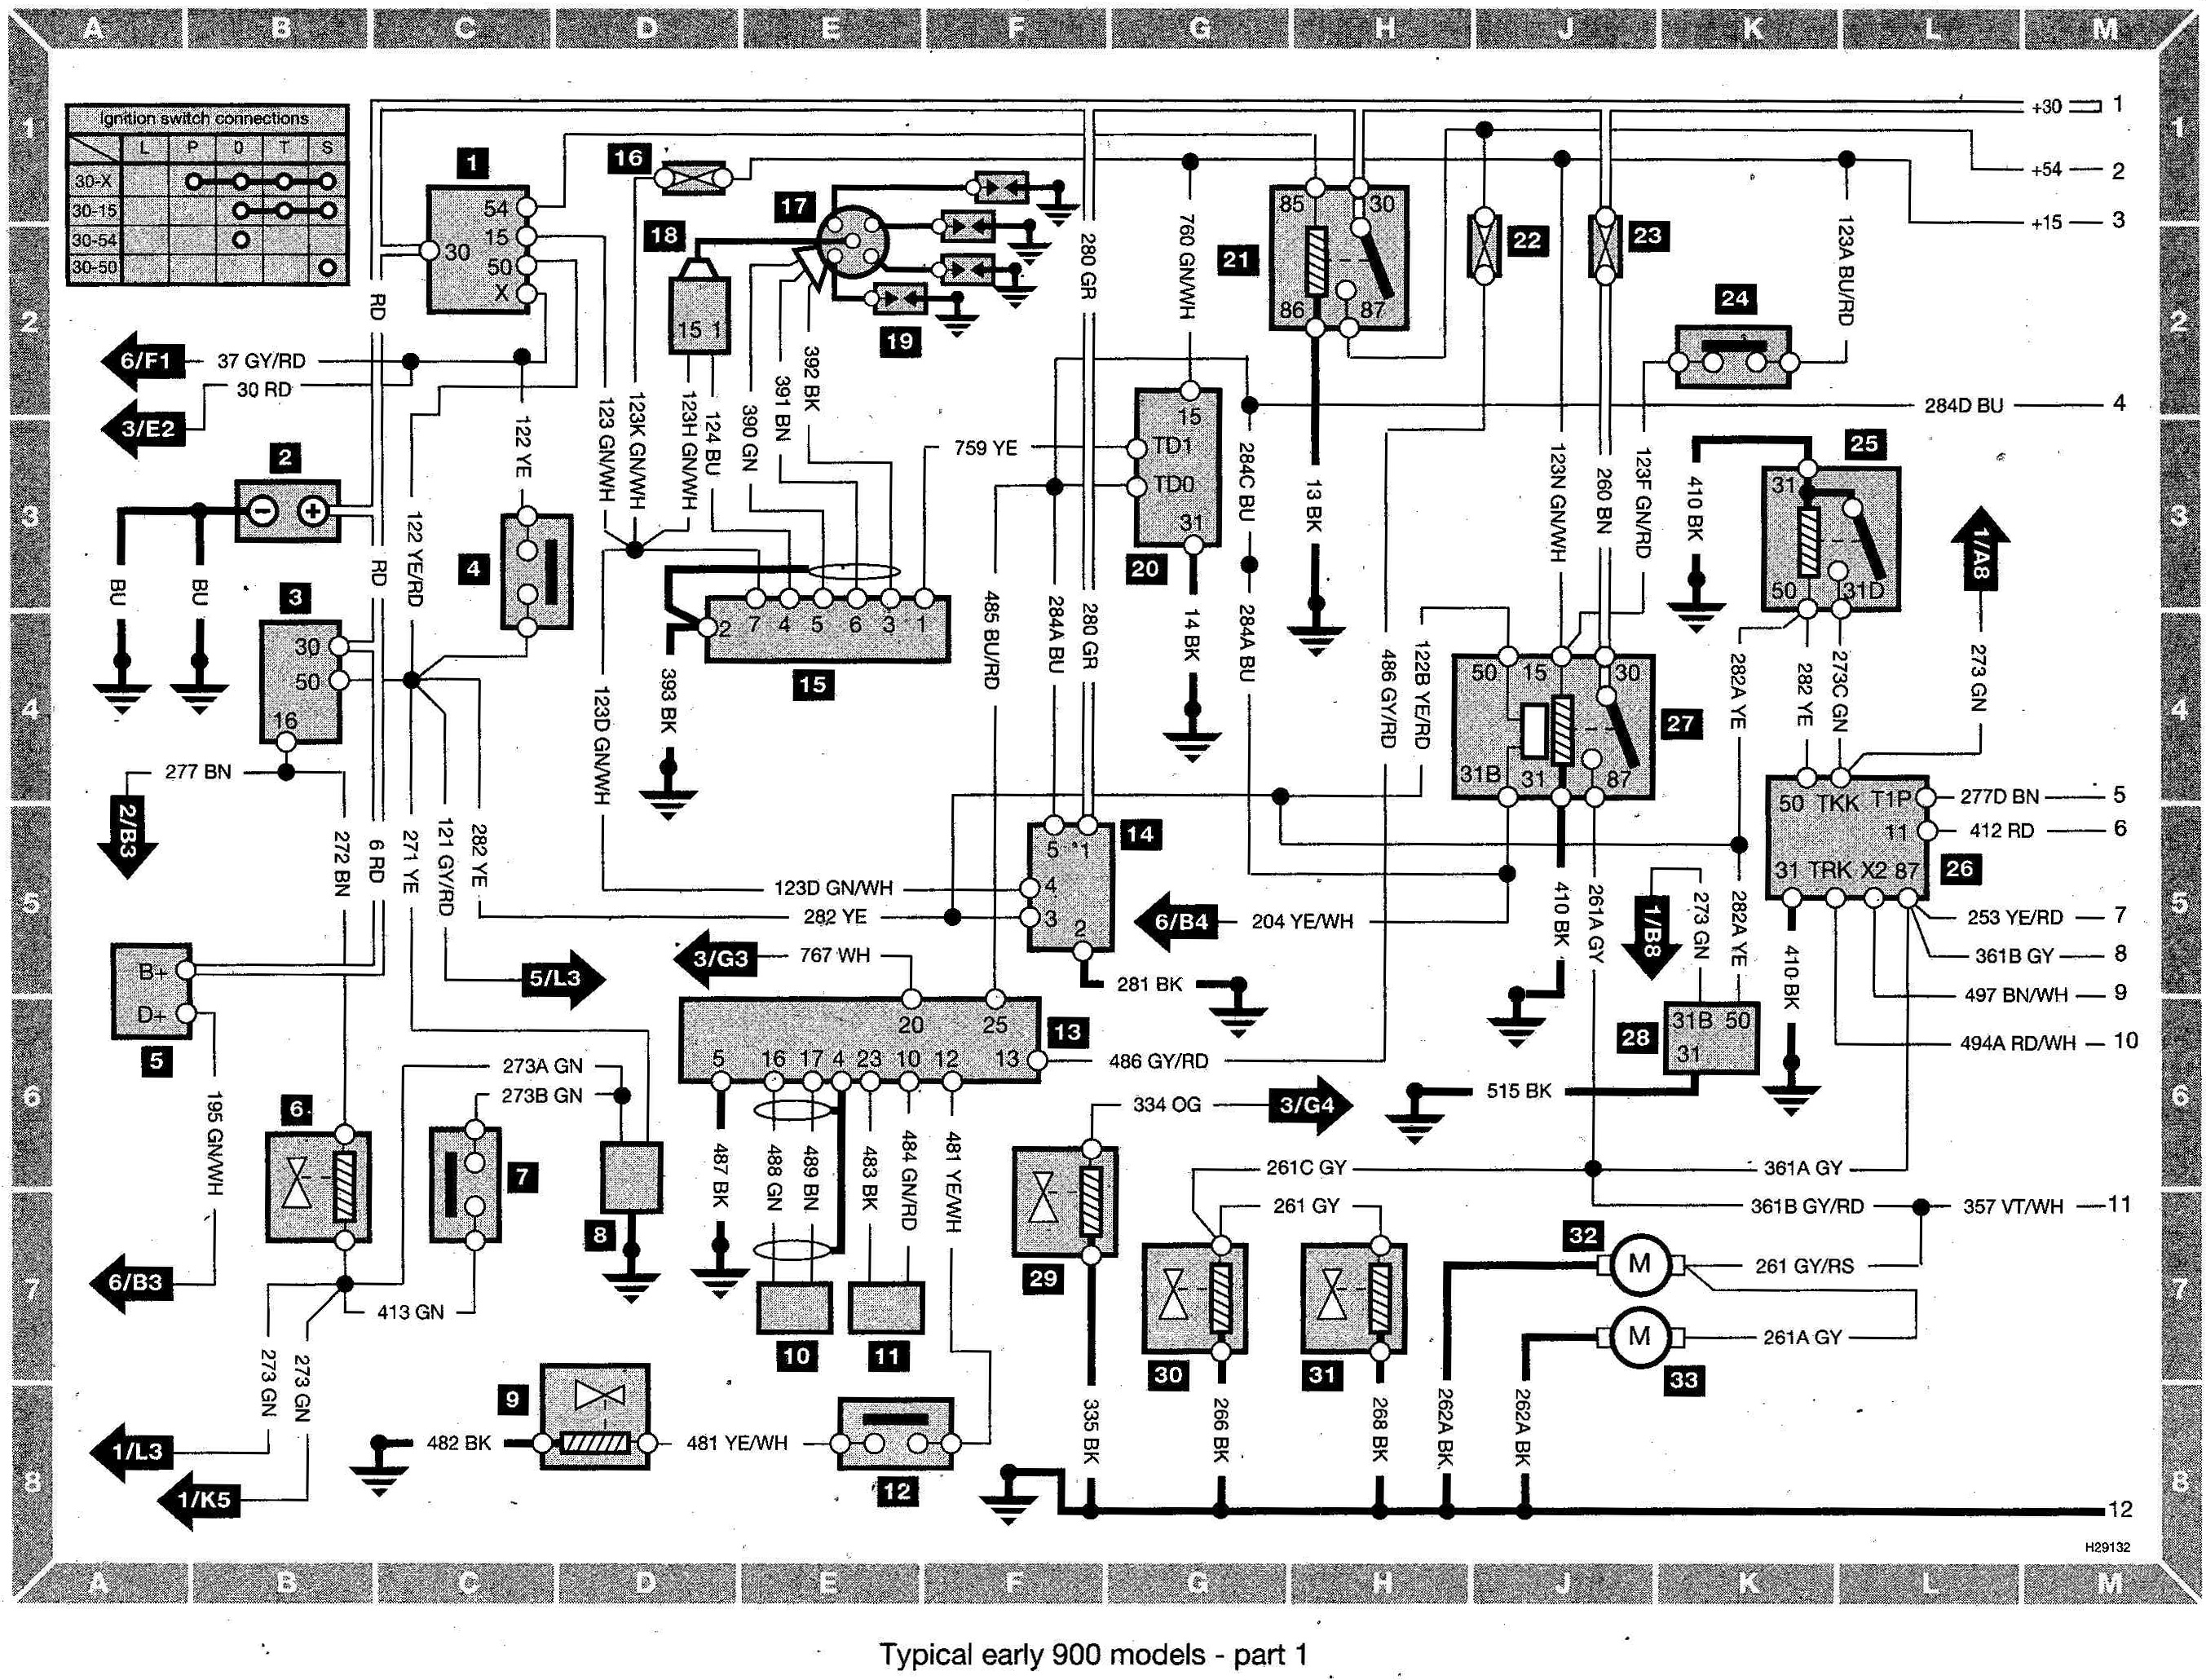 Single Phase Basic House Wiring Diagram from j-ware.no-ip.com